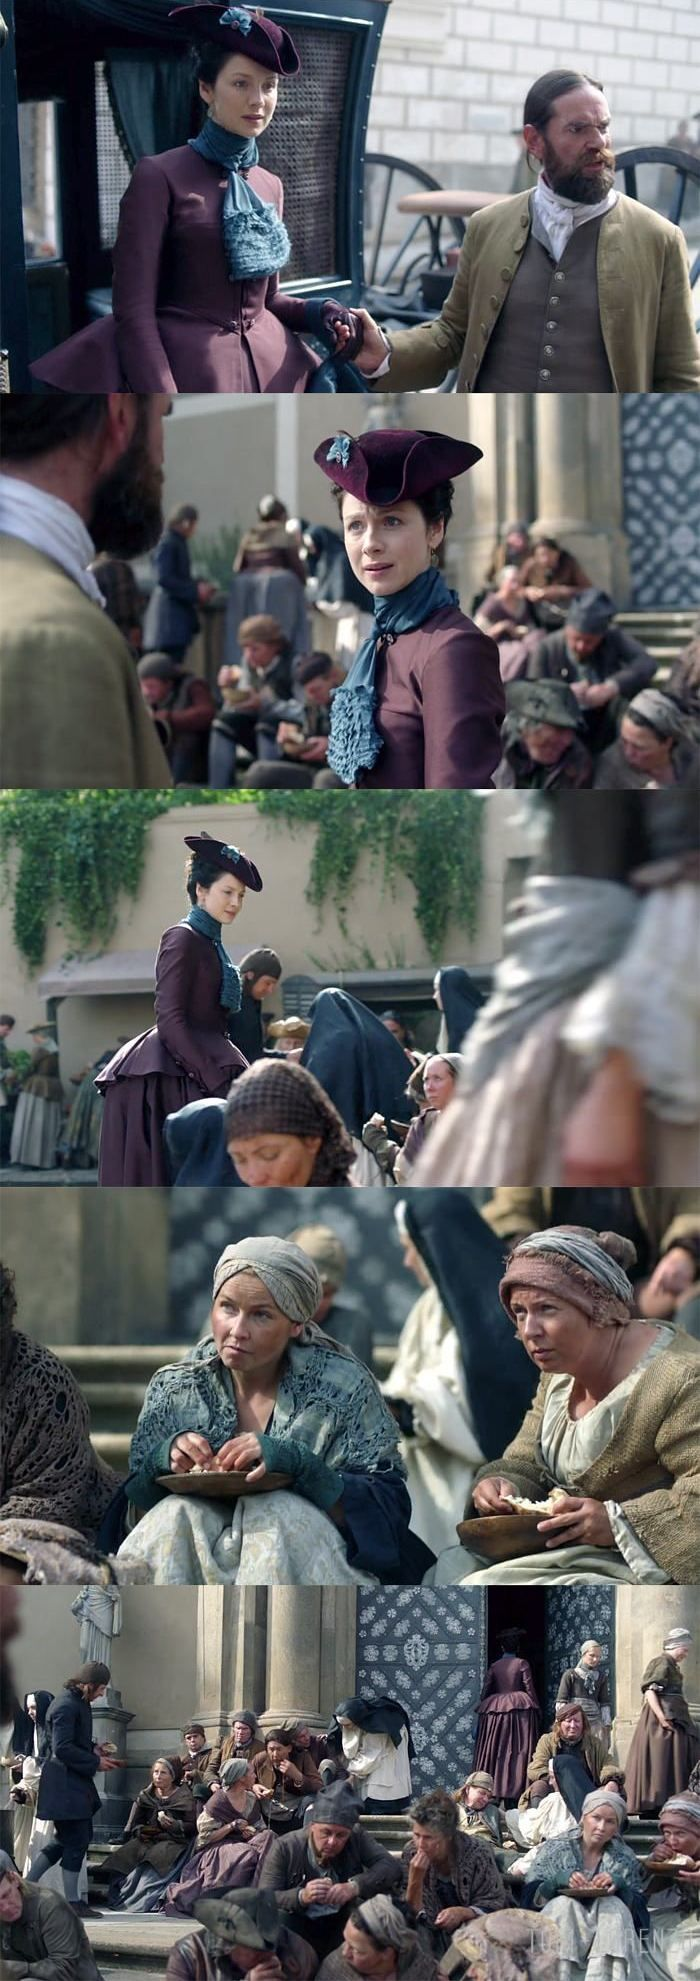 Outlander-Style-Season-2-Episode-3-Starz-Costumes-Terry-Desbrach-TV-Series-Tom-Lorenzo-Site (7A) - a lovely in depth look at the costumes and the story they are telling!